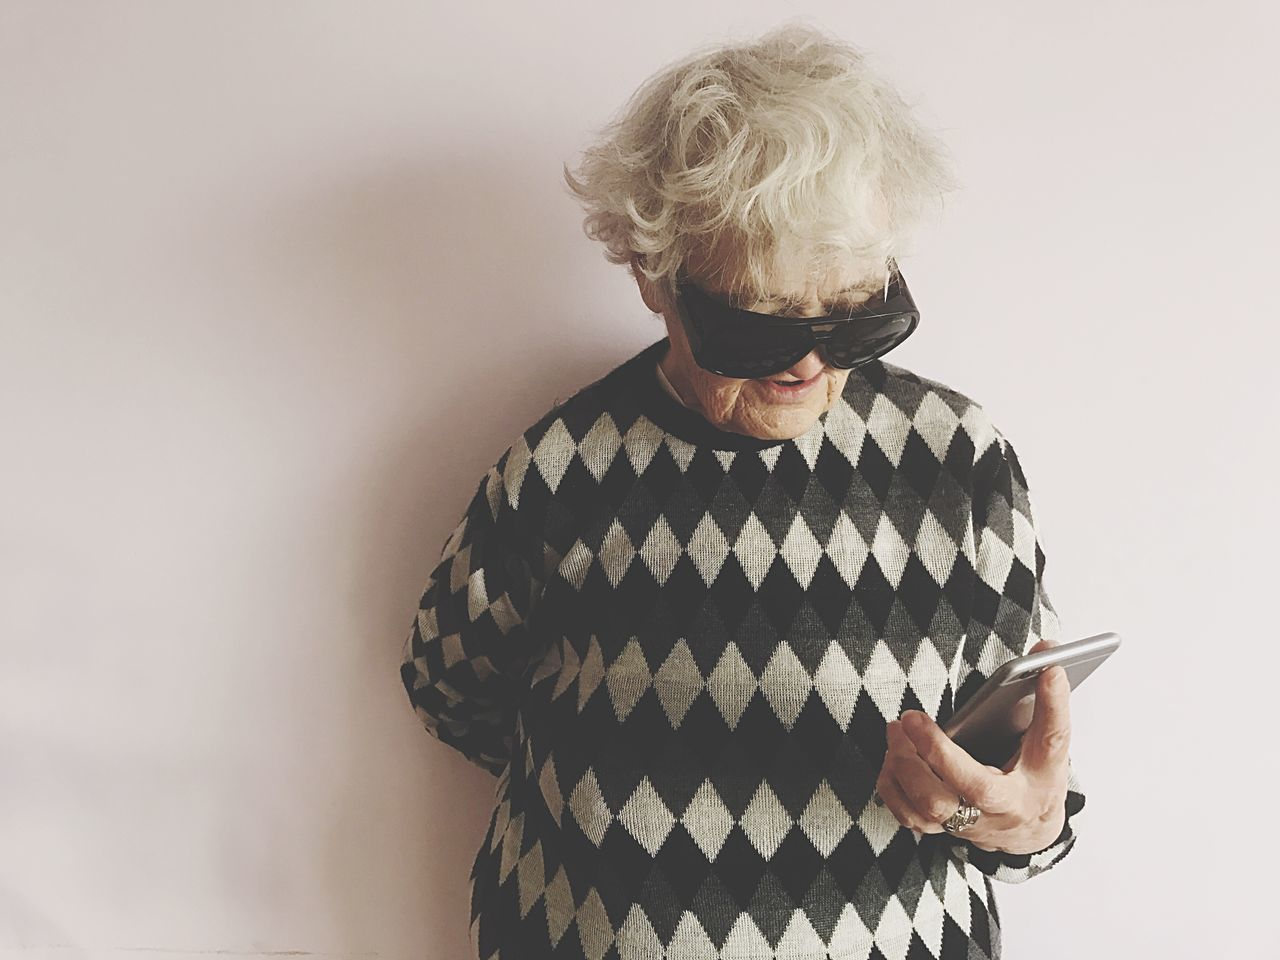 Real People Waist Up Senior Adult One Person Lifestyles Indoors  Front View Standing Leisure Activity Gray Hair Human Hand Old Lady Woman Senior Old Elderly Pensioner New Technology Smartphone IPhone